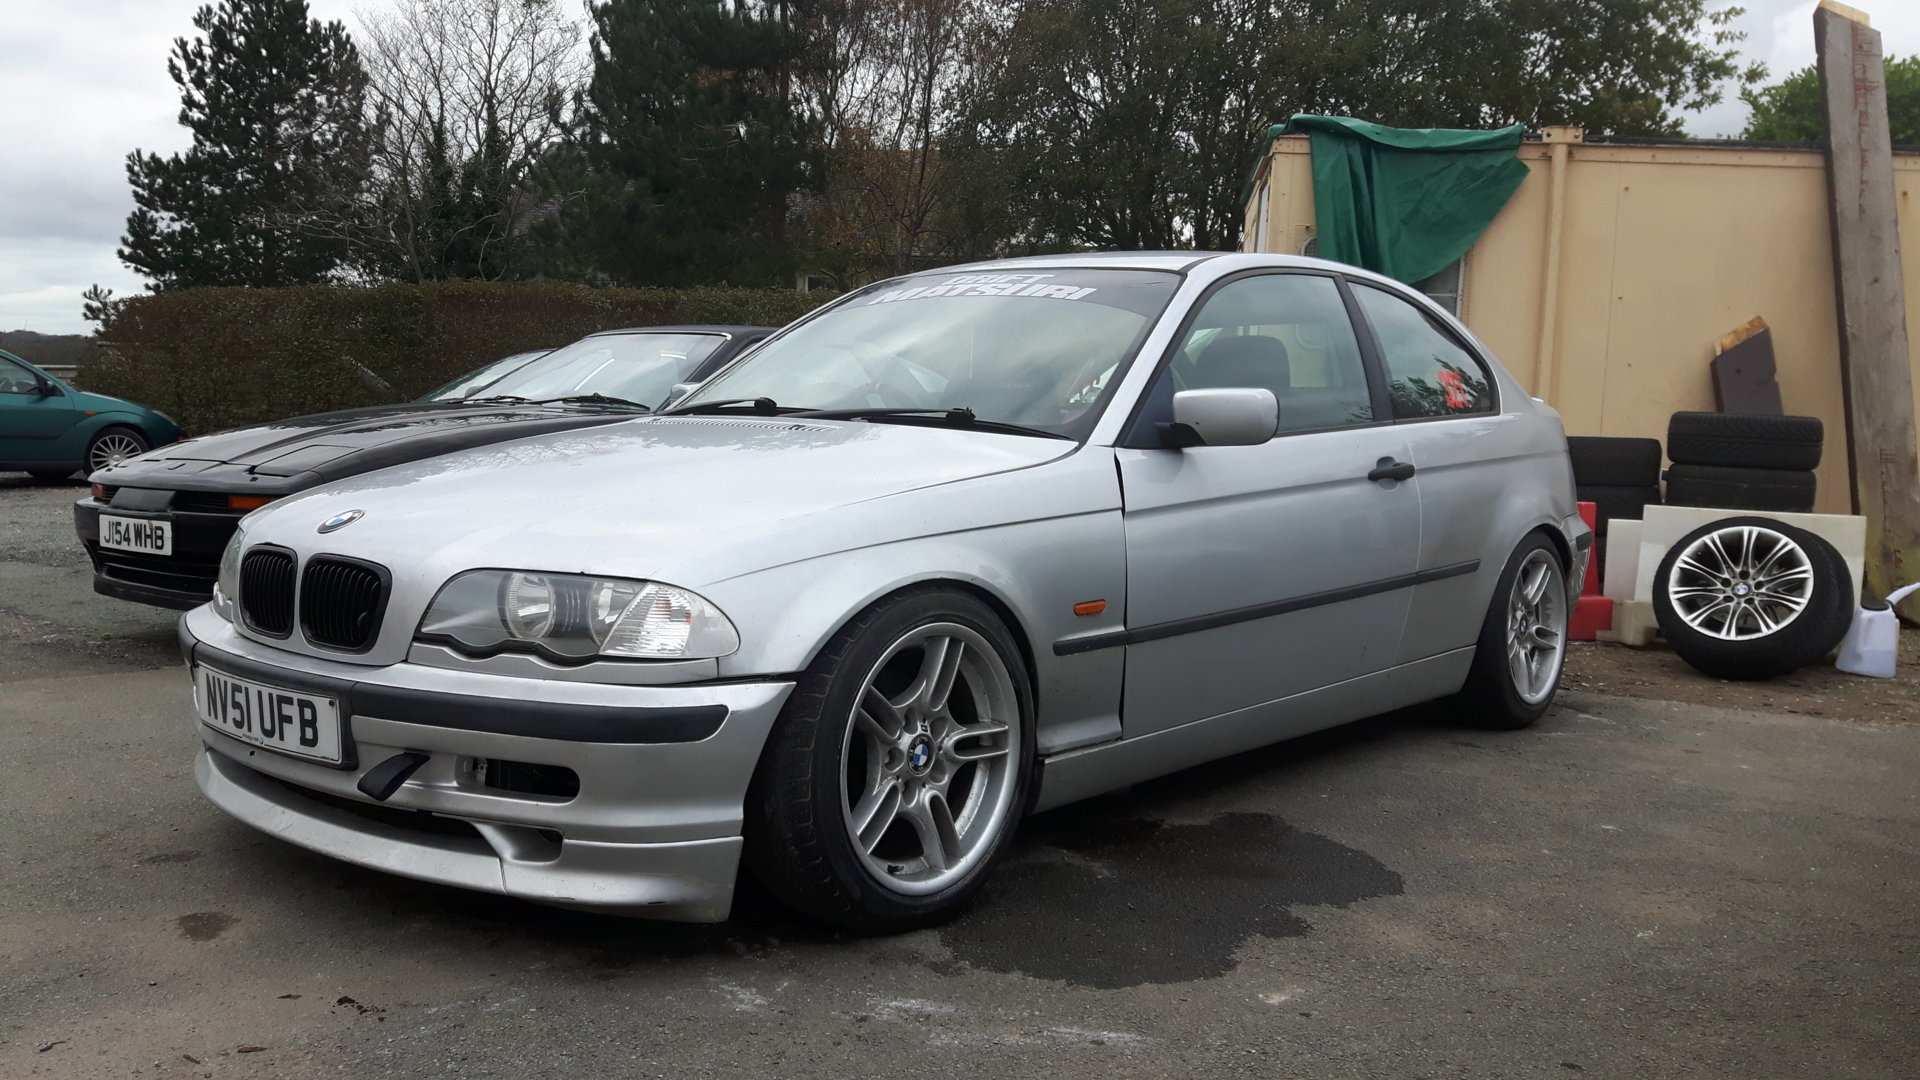 for sale bmw e46 3 0 litre compact ready to go driftworks forum. Black Bedroom Furniture Sets. Home Design Ideas